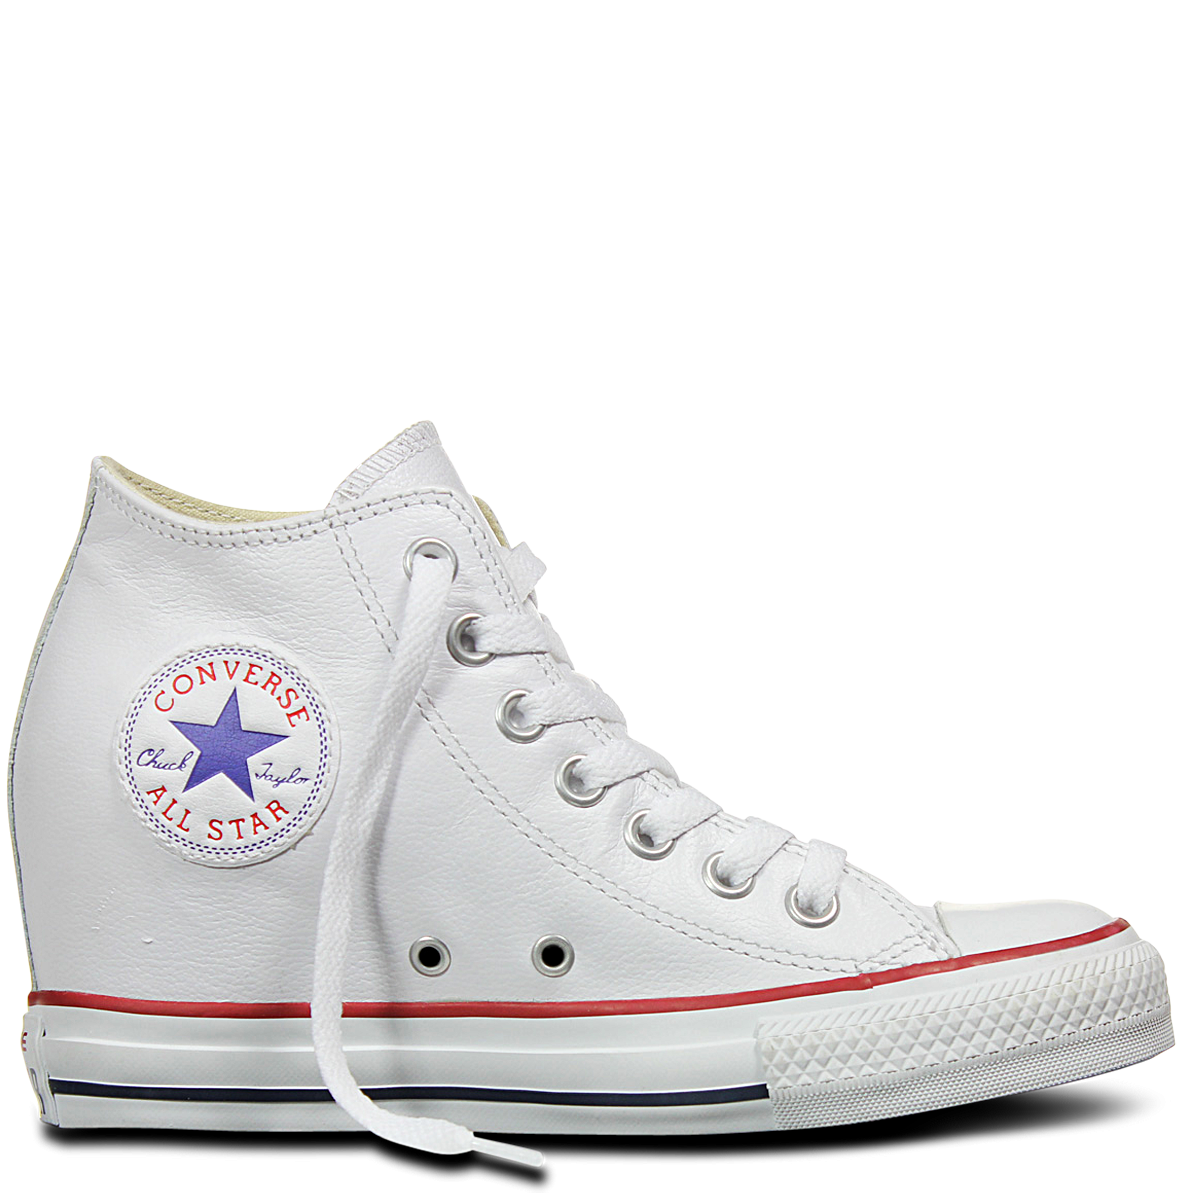 4224cb9b0127 Converse Chuck Taylor All Star Lux Mid Hi White Leather Wedge 549560C  Smooth Leather Famous Rock ...